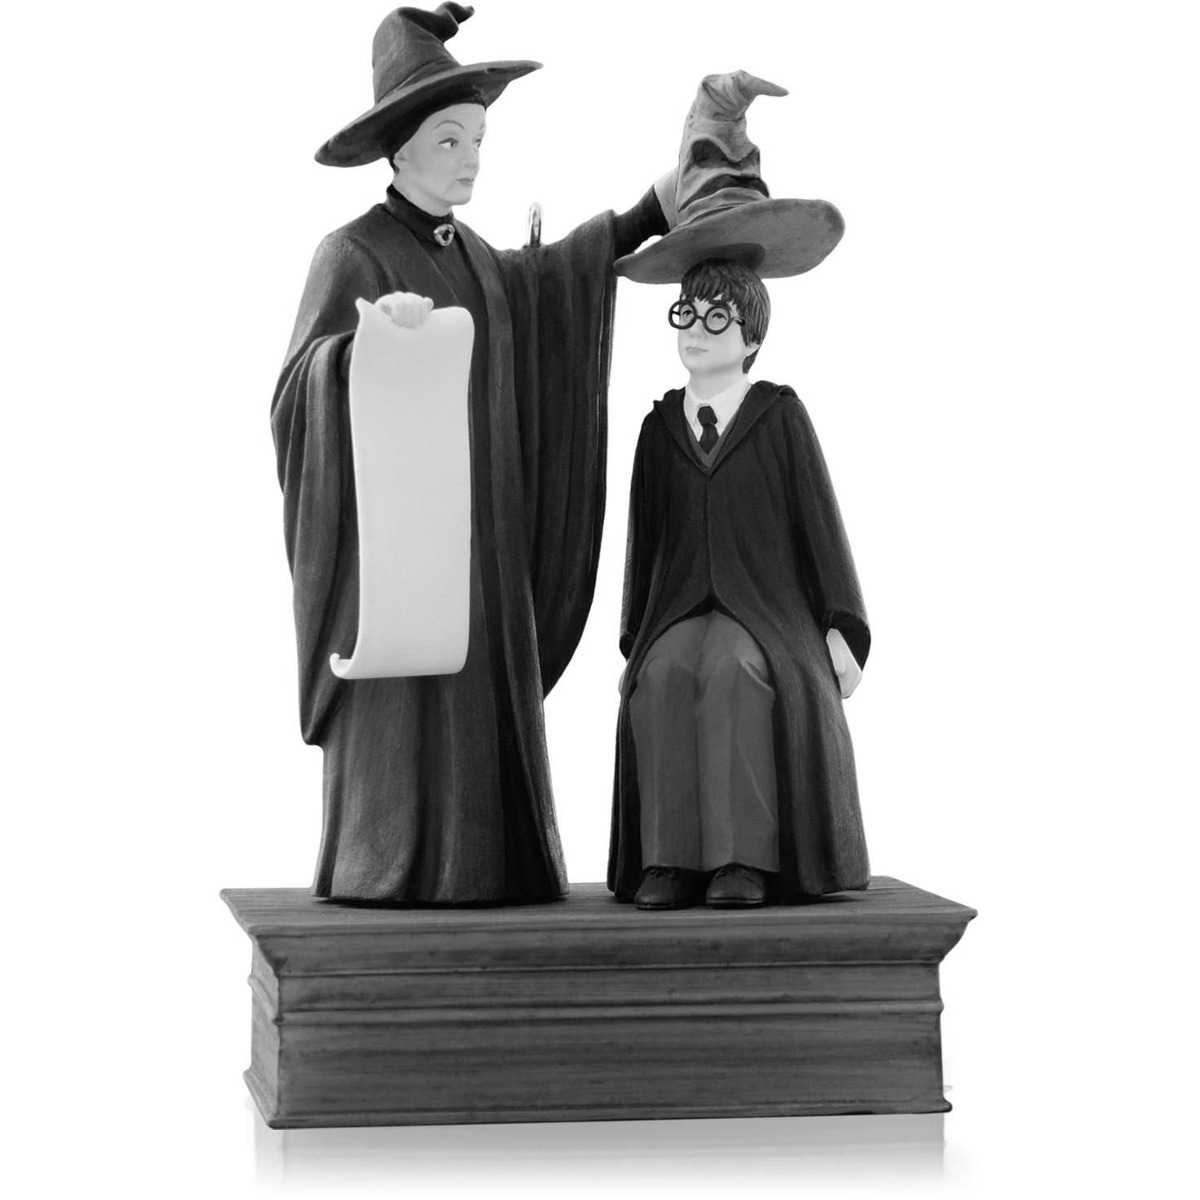 3919143956f61 El Sombrero Seleccionador Harry Potter 2014 Ornamento De Re ...